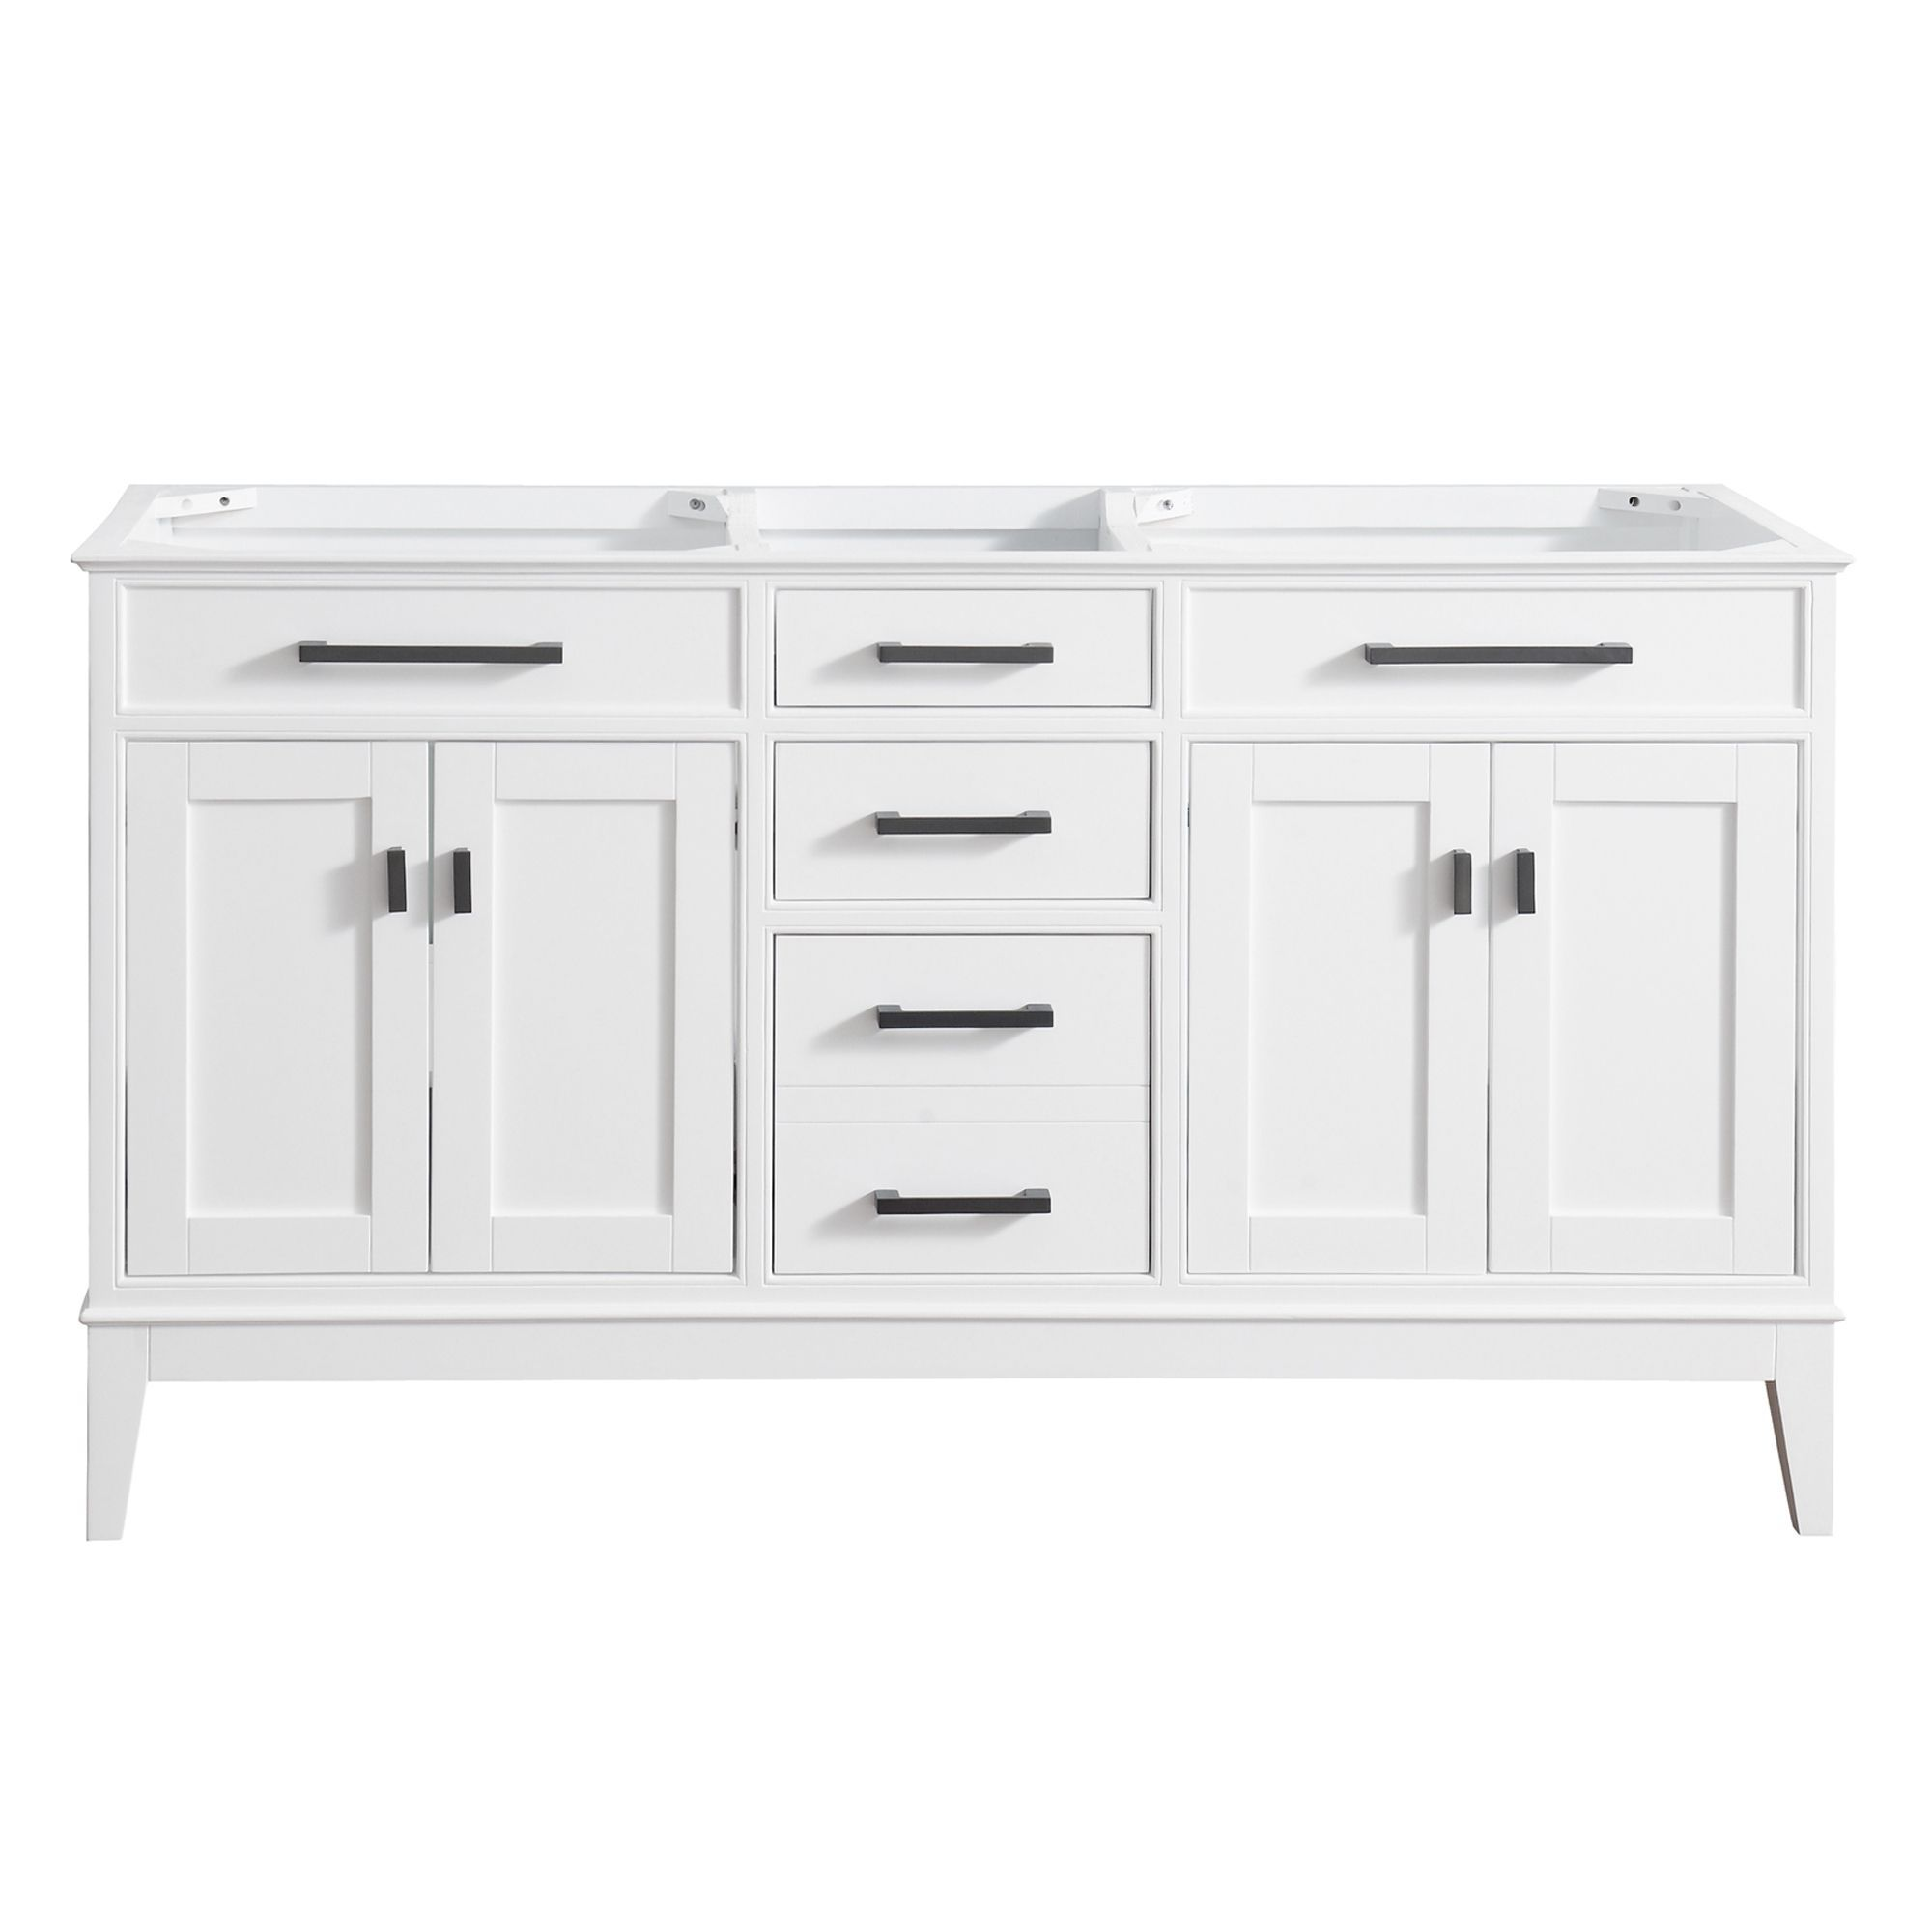 with and bathroom home sink design vanities style modern excellent designs inch in a creative vanity colors double room new